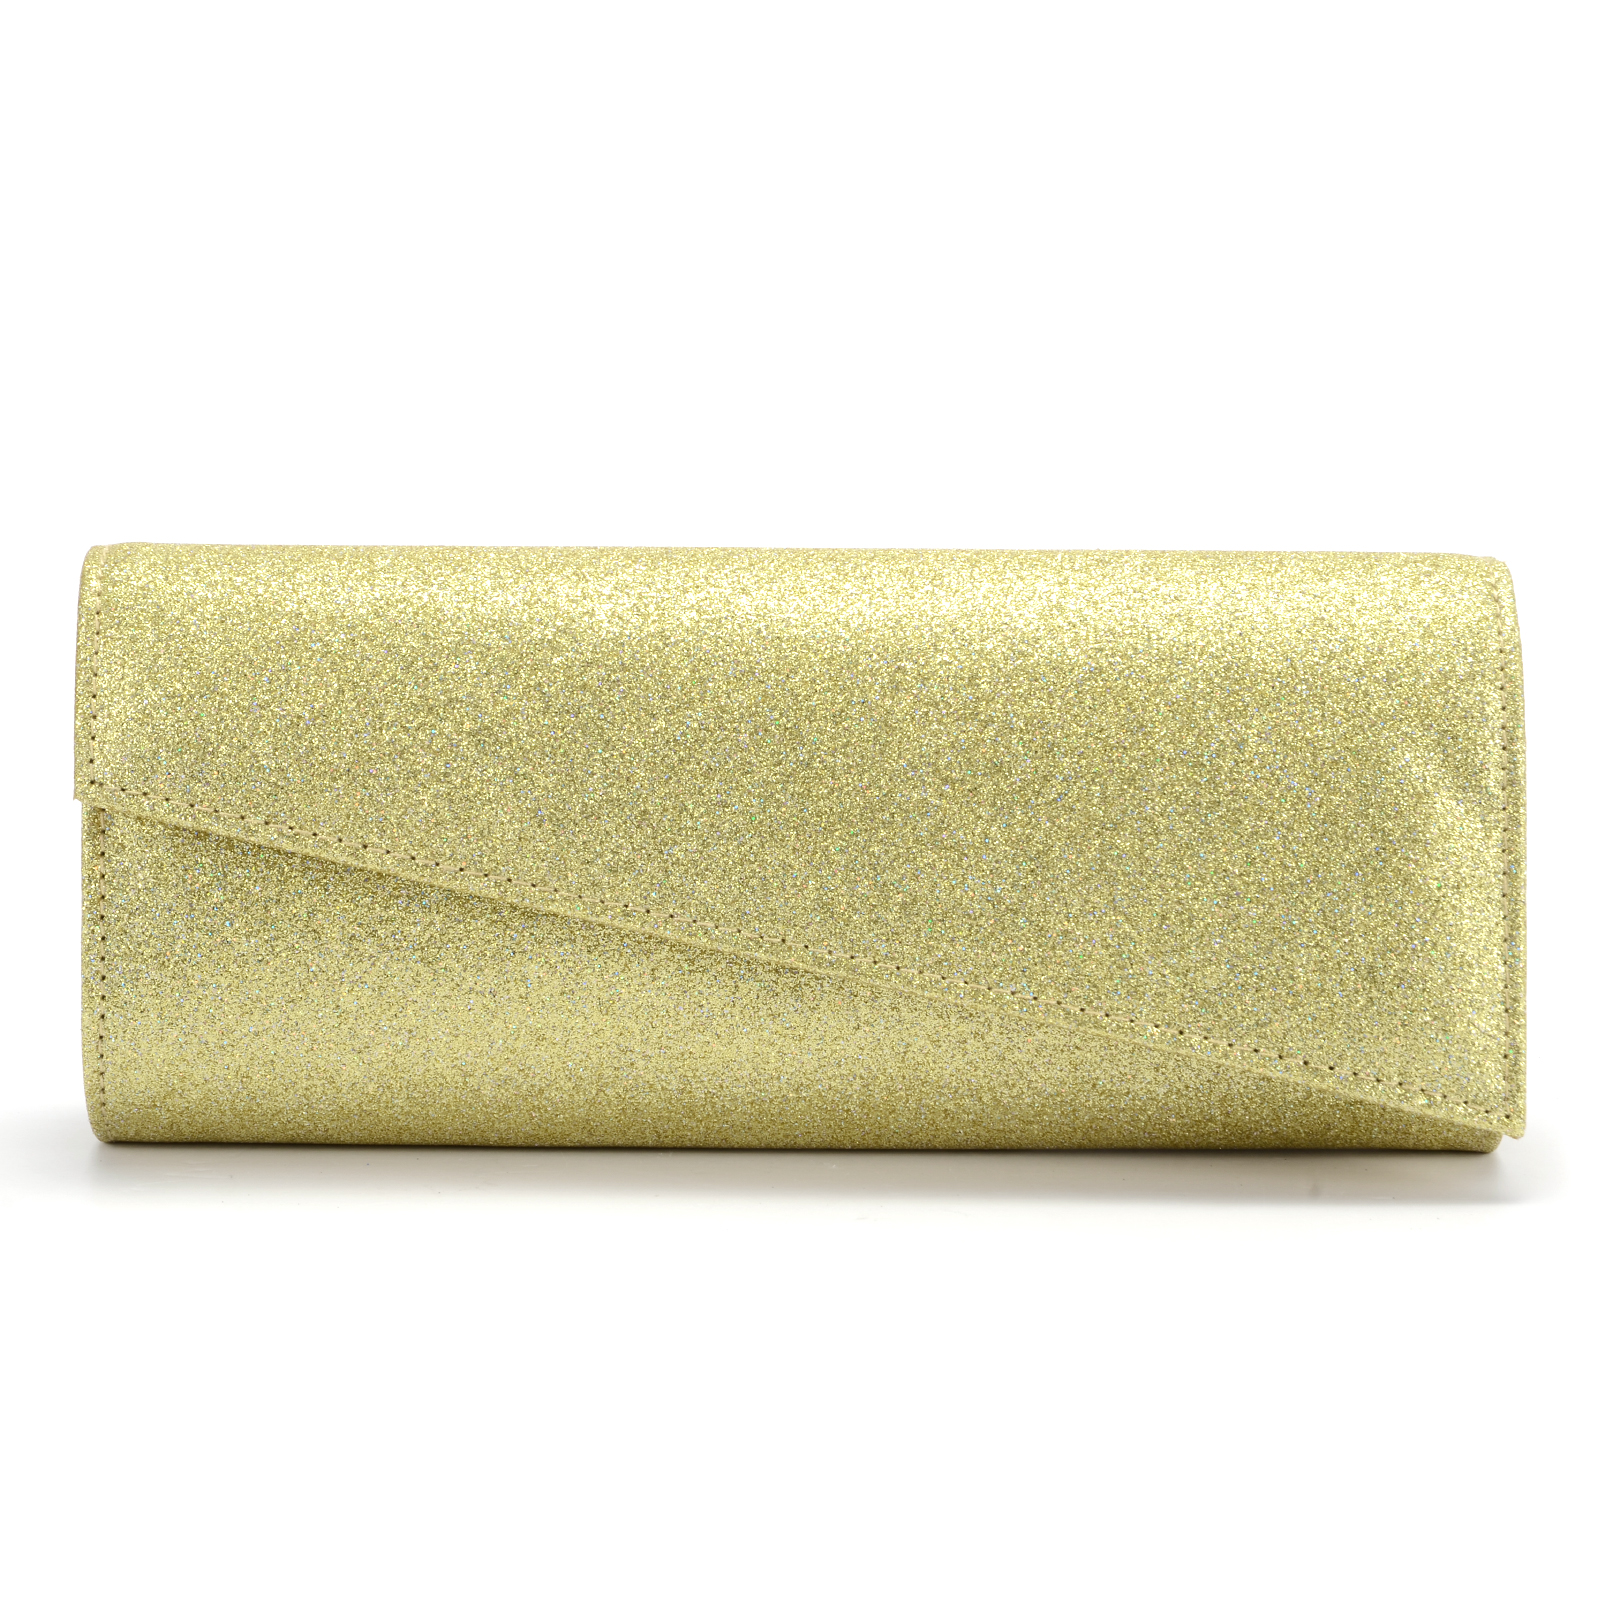 Black and Gold confetti Evening Clutch from Vivien of Holloway  Formal Gold Clutches